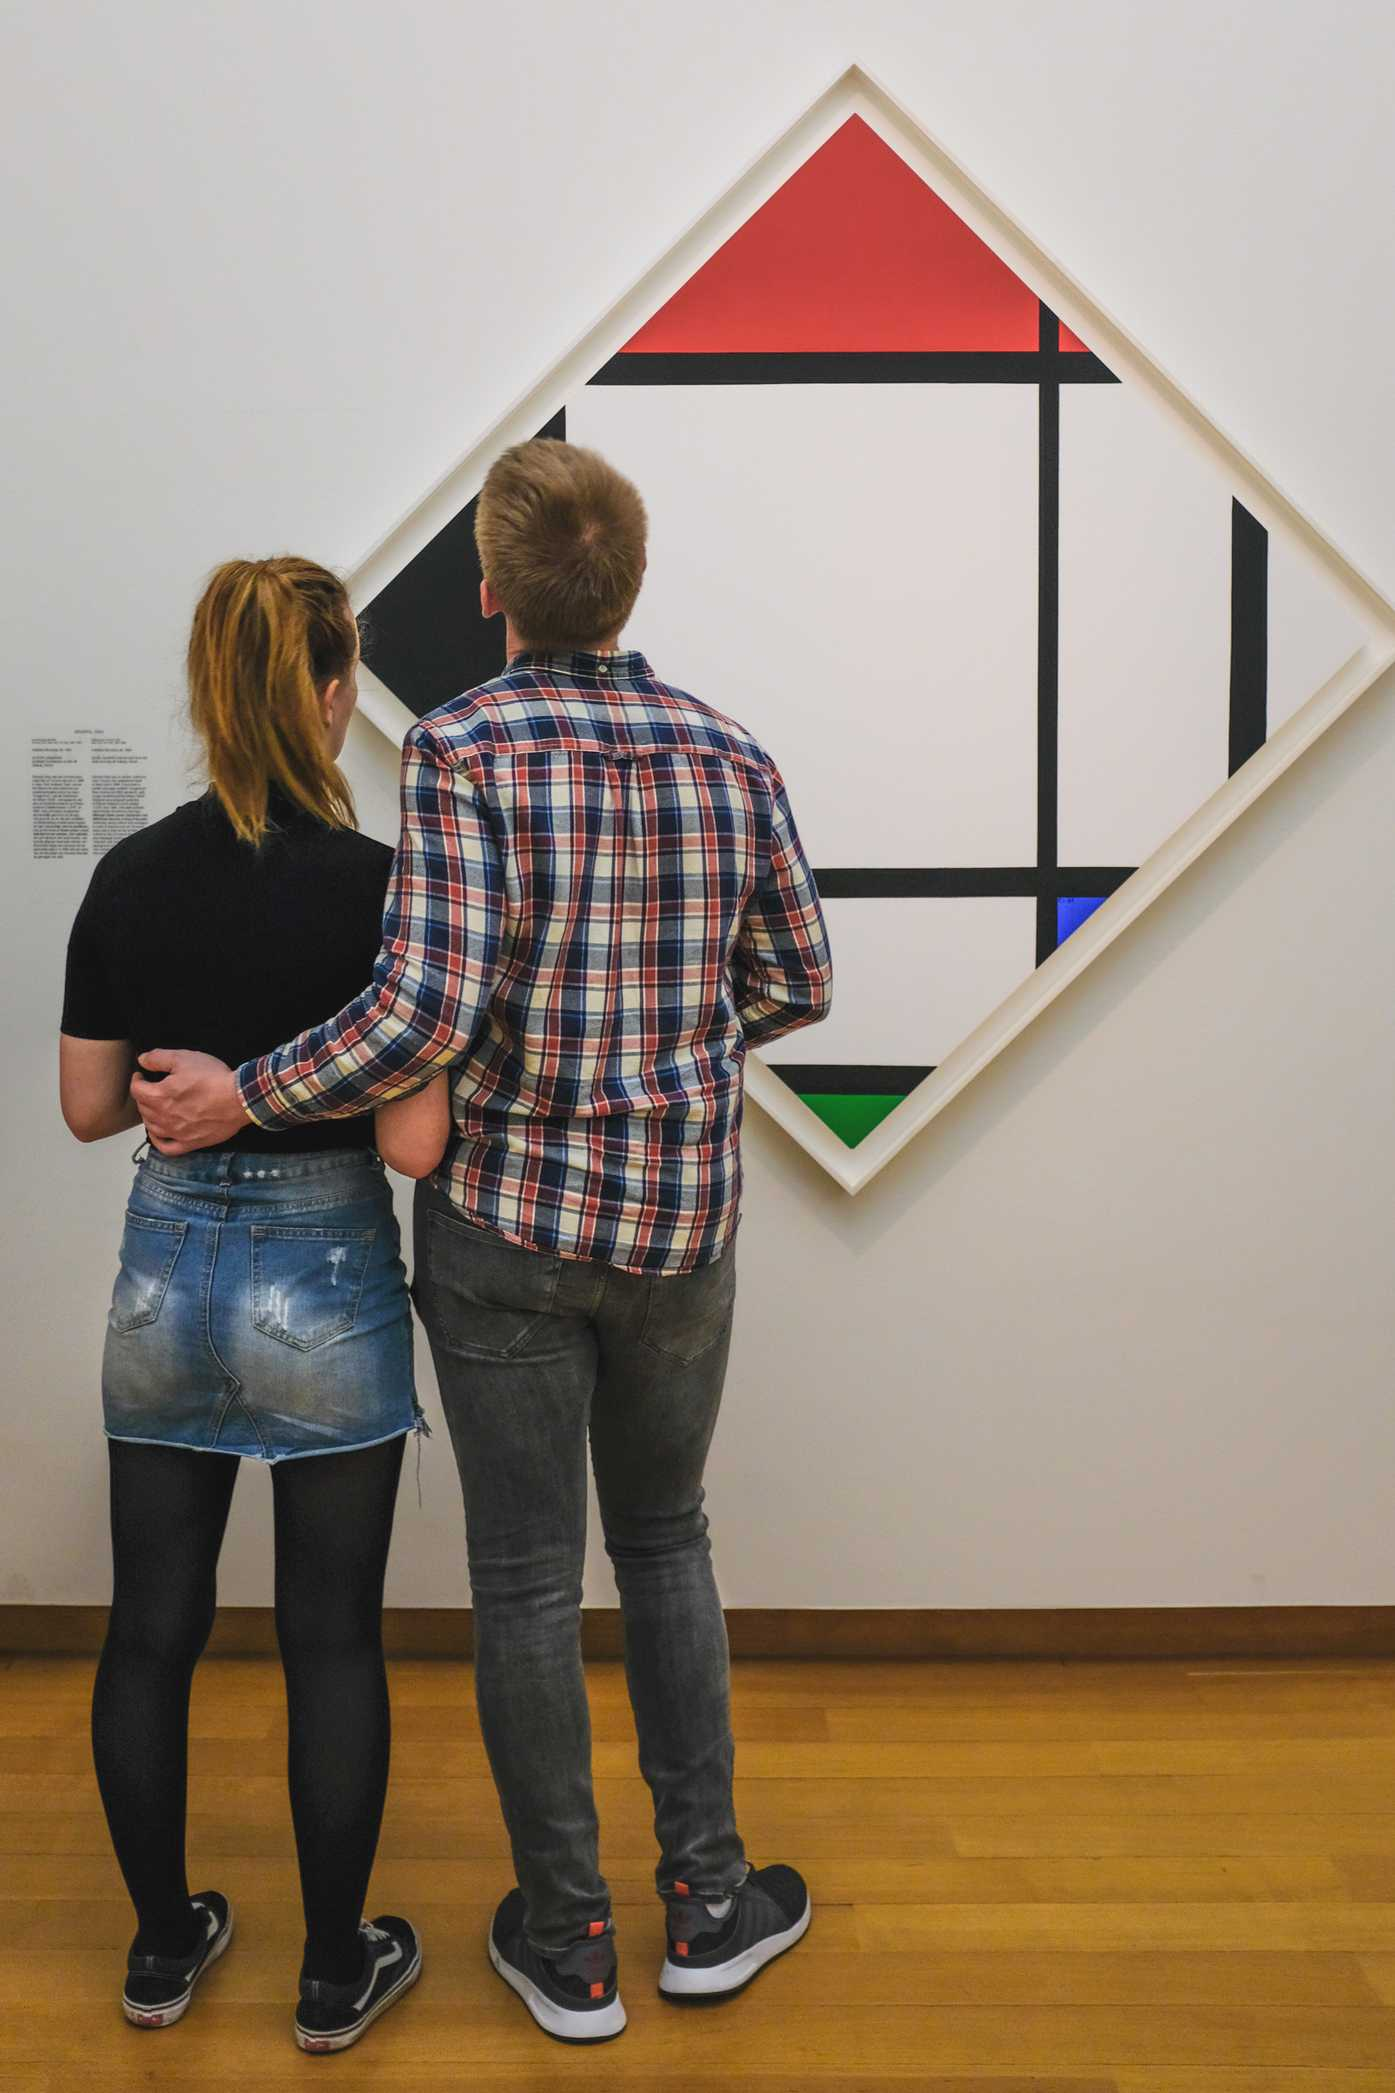 A young couple looks at painting from the art movement De Stijl